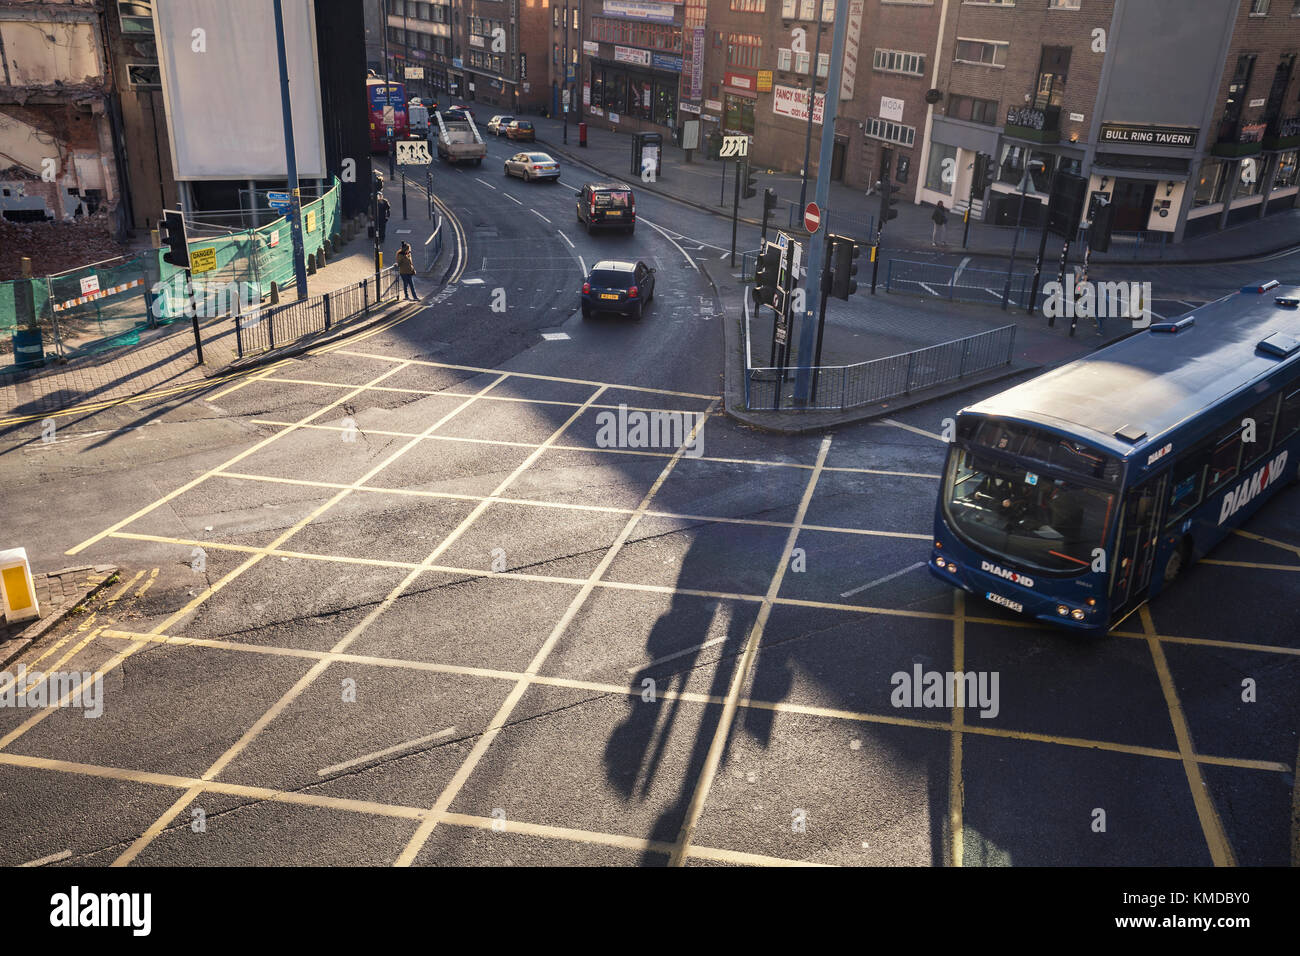 BIRMINGHAM, UK - DECEMBER 01, 2017: Elevated View over Busy Junction with Passing City Bus - Stock Image